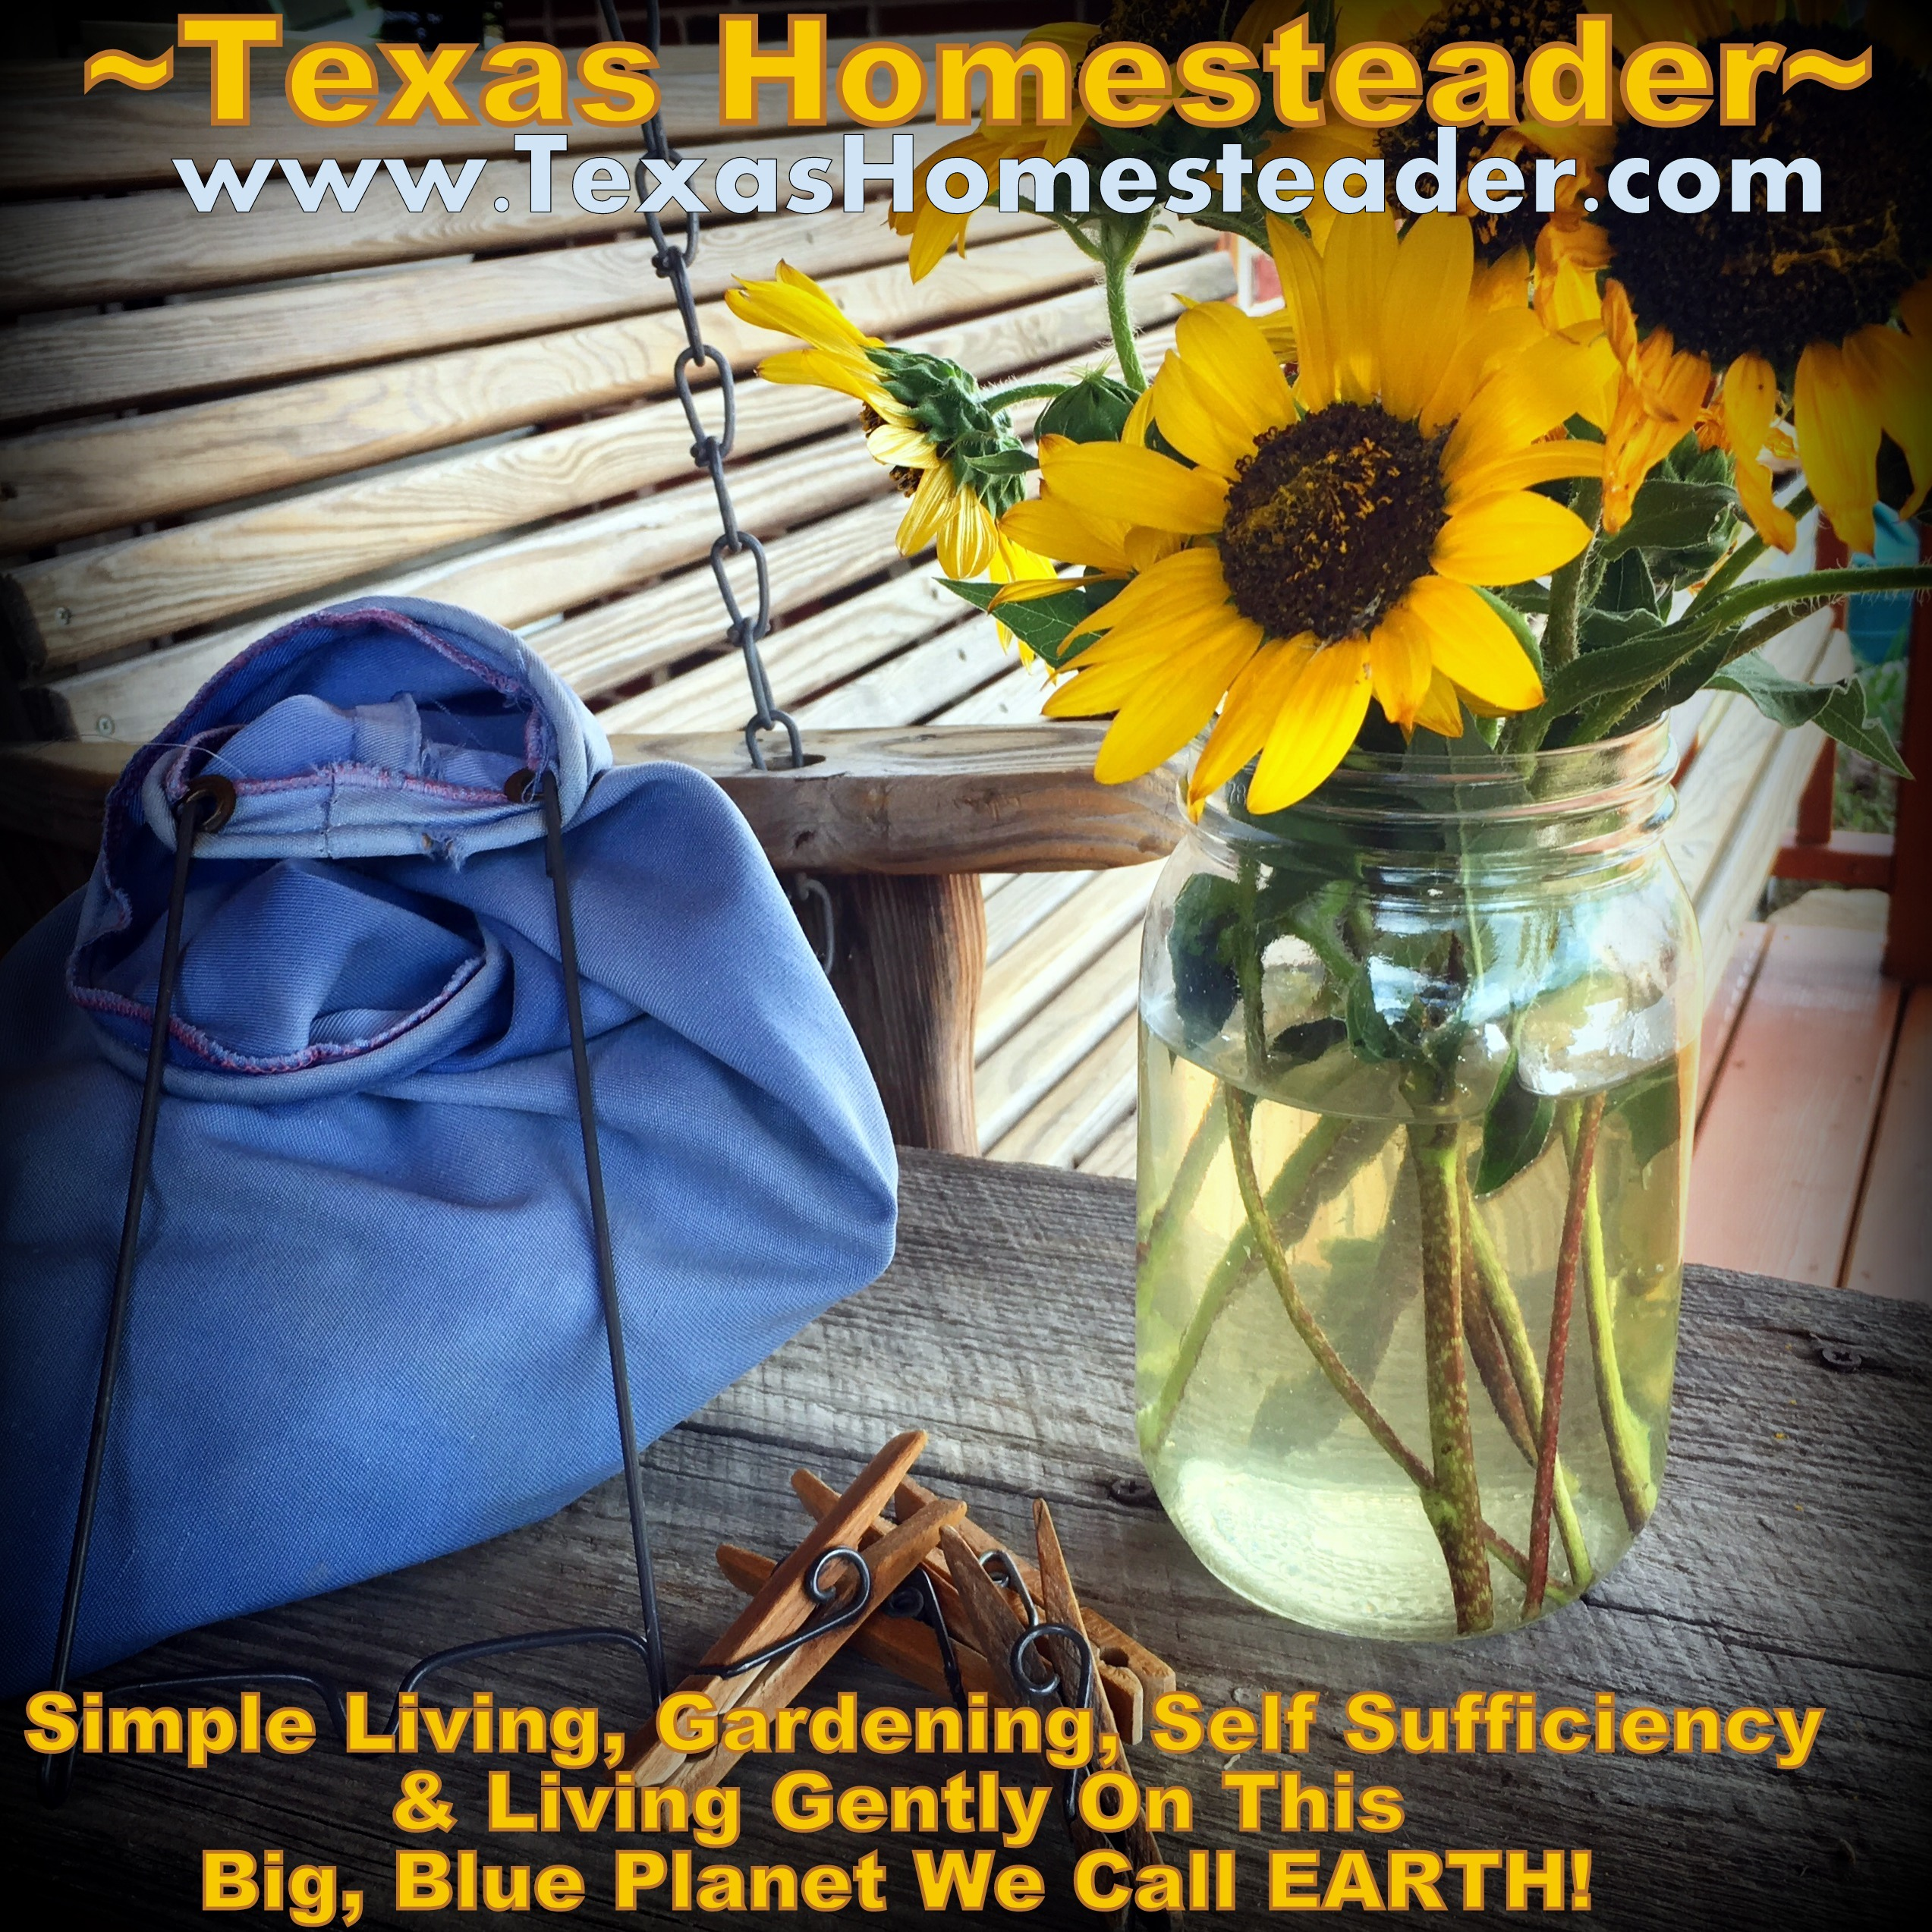 As promised my little ole blog has been moved from a mere extension of a website to its very own location, www.TexasHomesteader.com